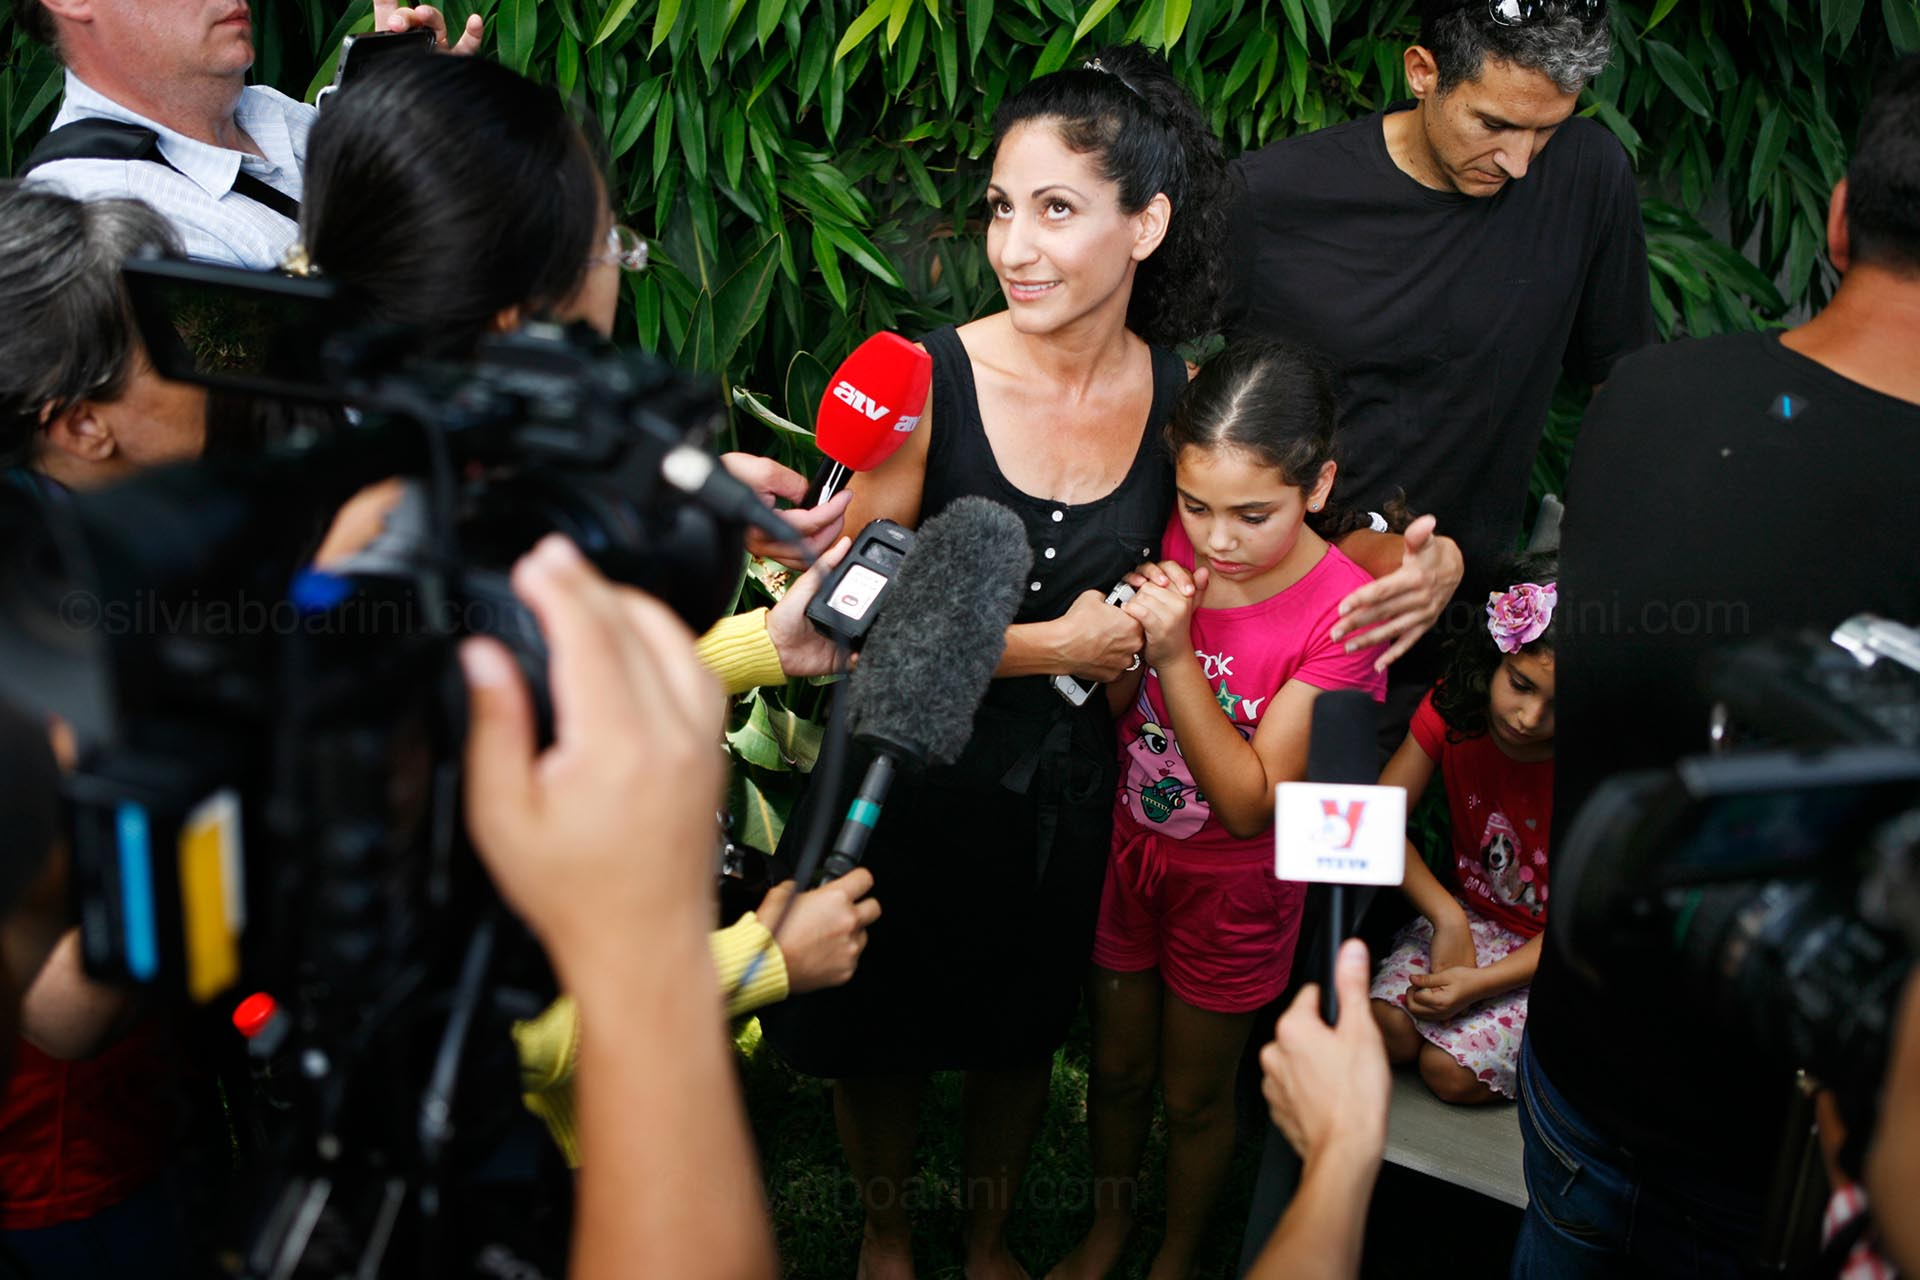 A meeting with an Israeli family in Ashkelon is organized for the press. The Lau answered questions about daily life during Operation Protective Edge, as Israel named the Gaza war of 2014.  Ashkelon, Israel July 2014